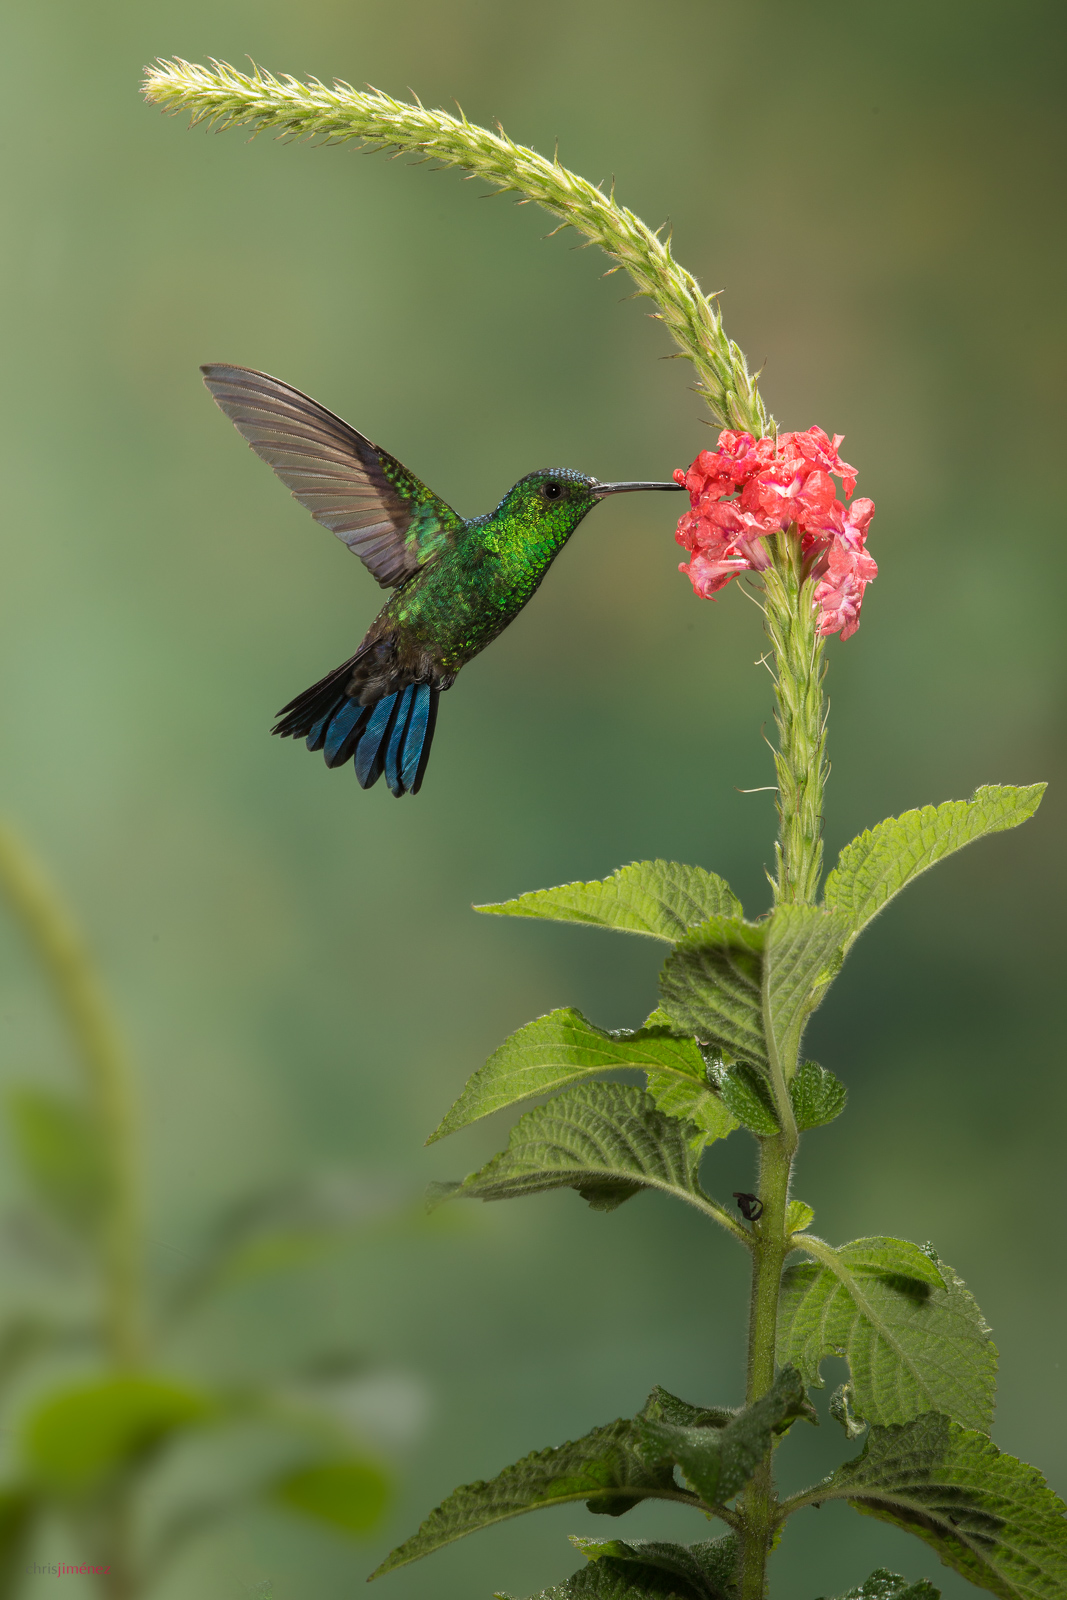 Steely-vented Hummingbird (Amazilia saucerrottei) feeding from flowers in flight